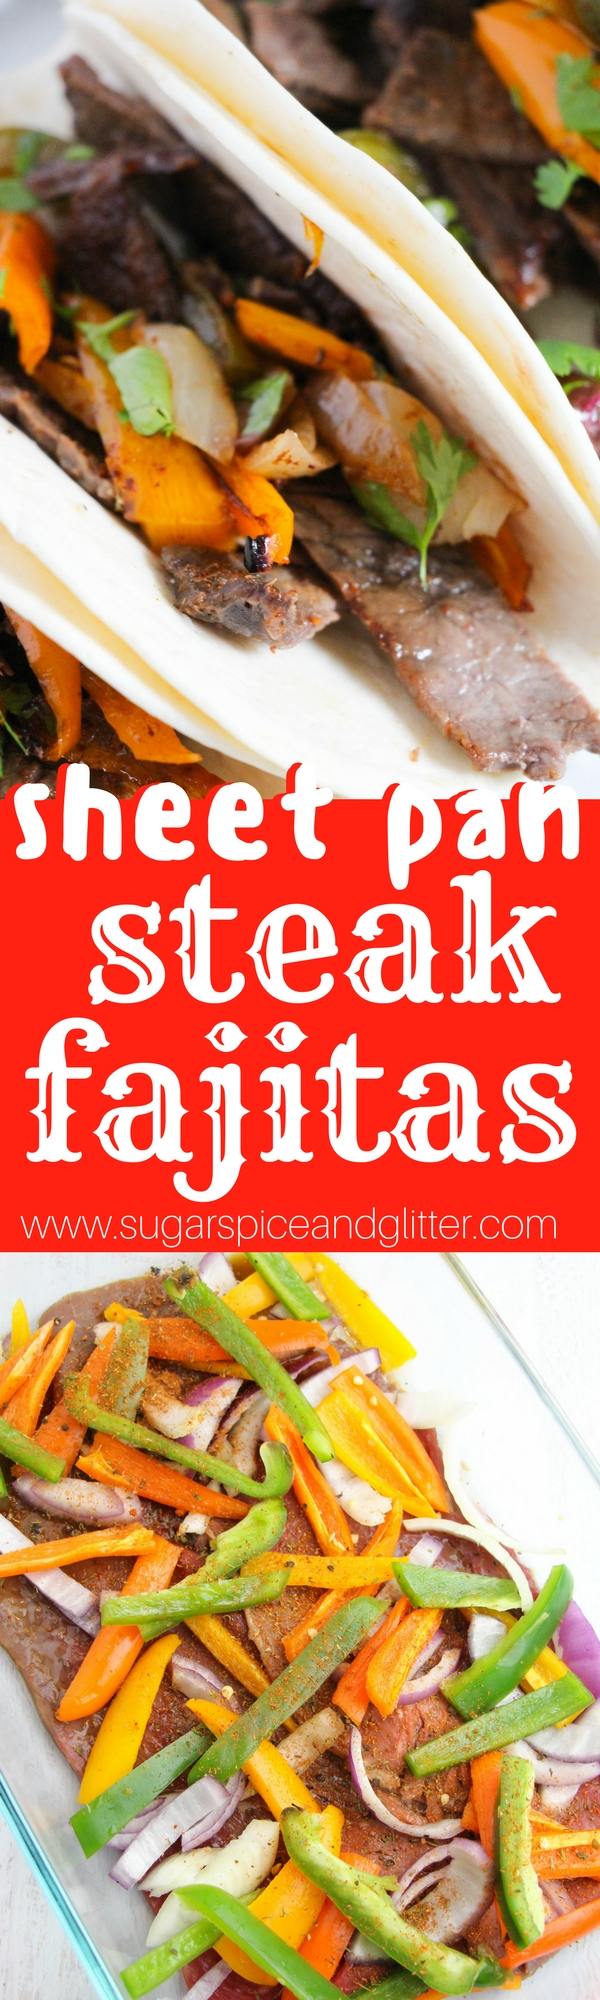 Easy sheet pan steak fajitas - delicious, flavorful steak fajitas with minimal effort. Prep this recipe the night before and just pop it in the oven 20 minutes before supper! Veg and protein packed